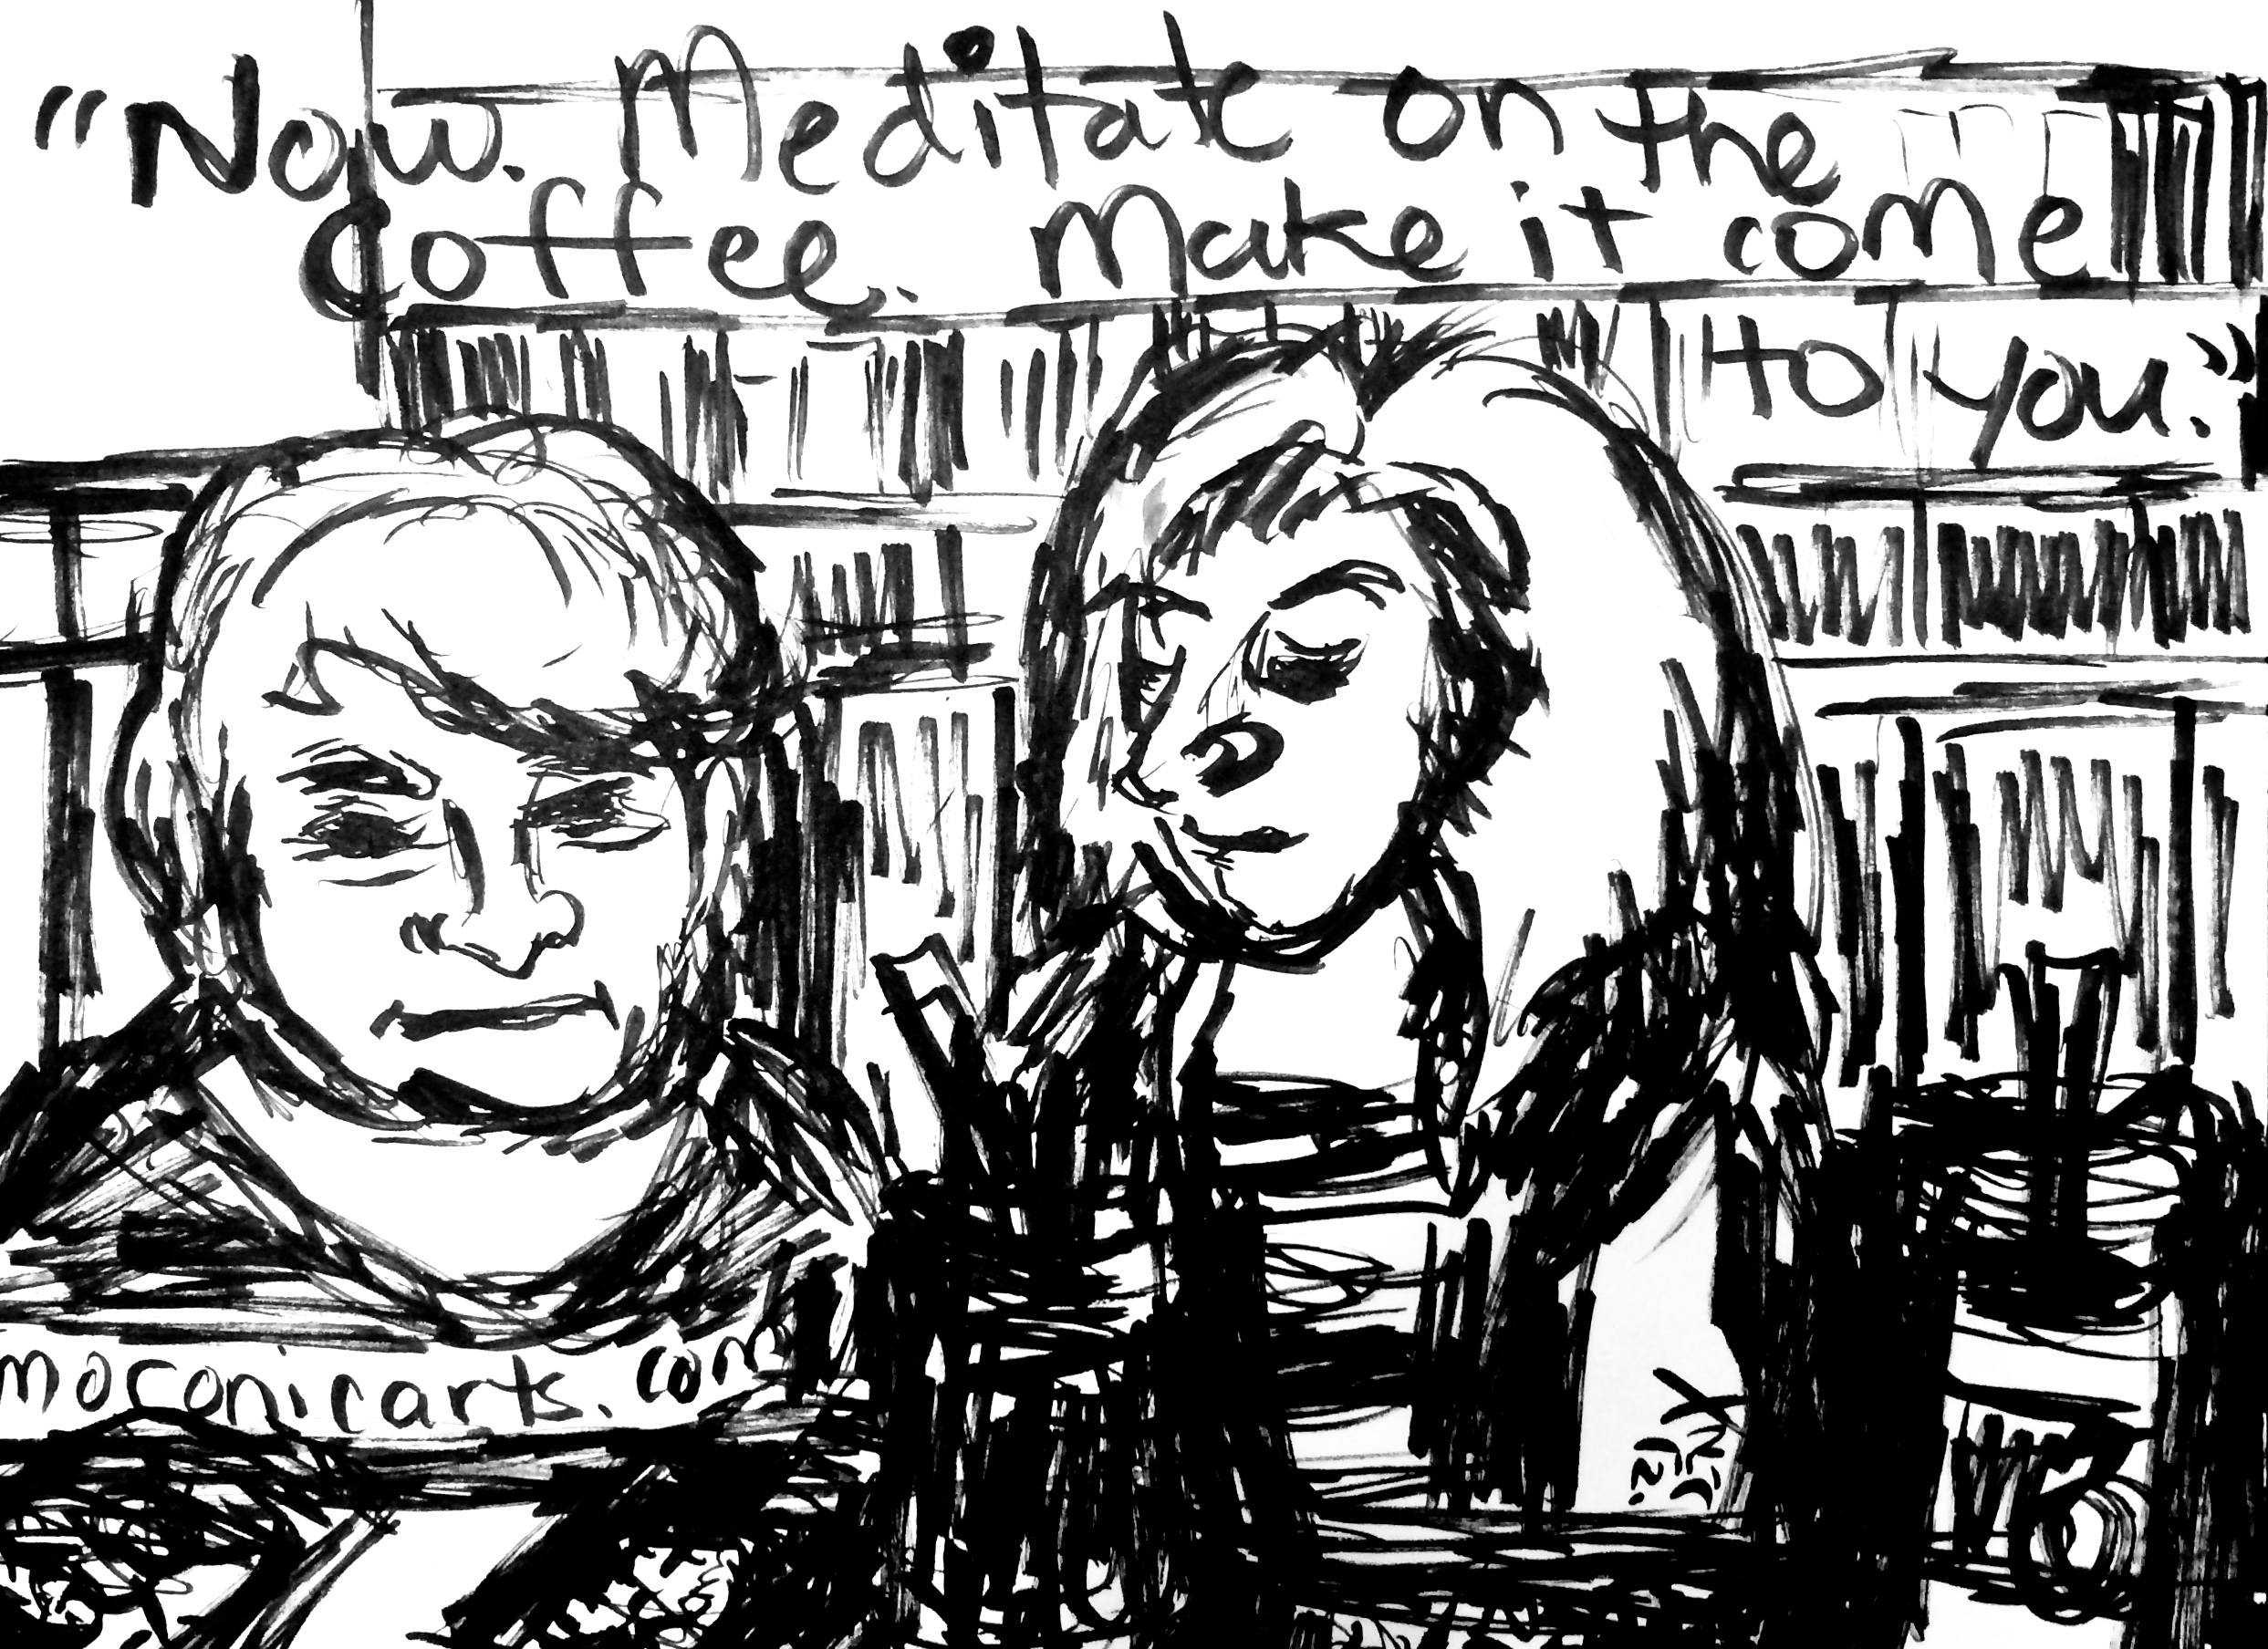 Image: black-and-white cartoon showing an older lady sitting next to a middle-aged blond woman relaxing at a bookstore-cafe.